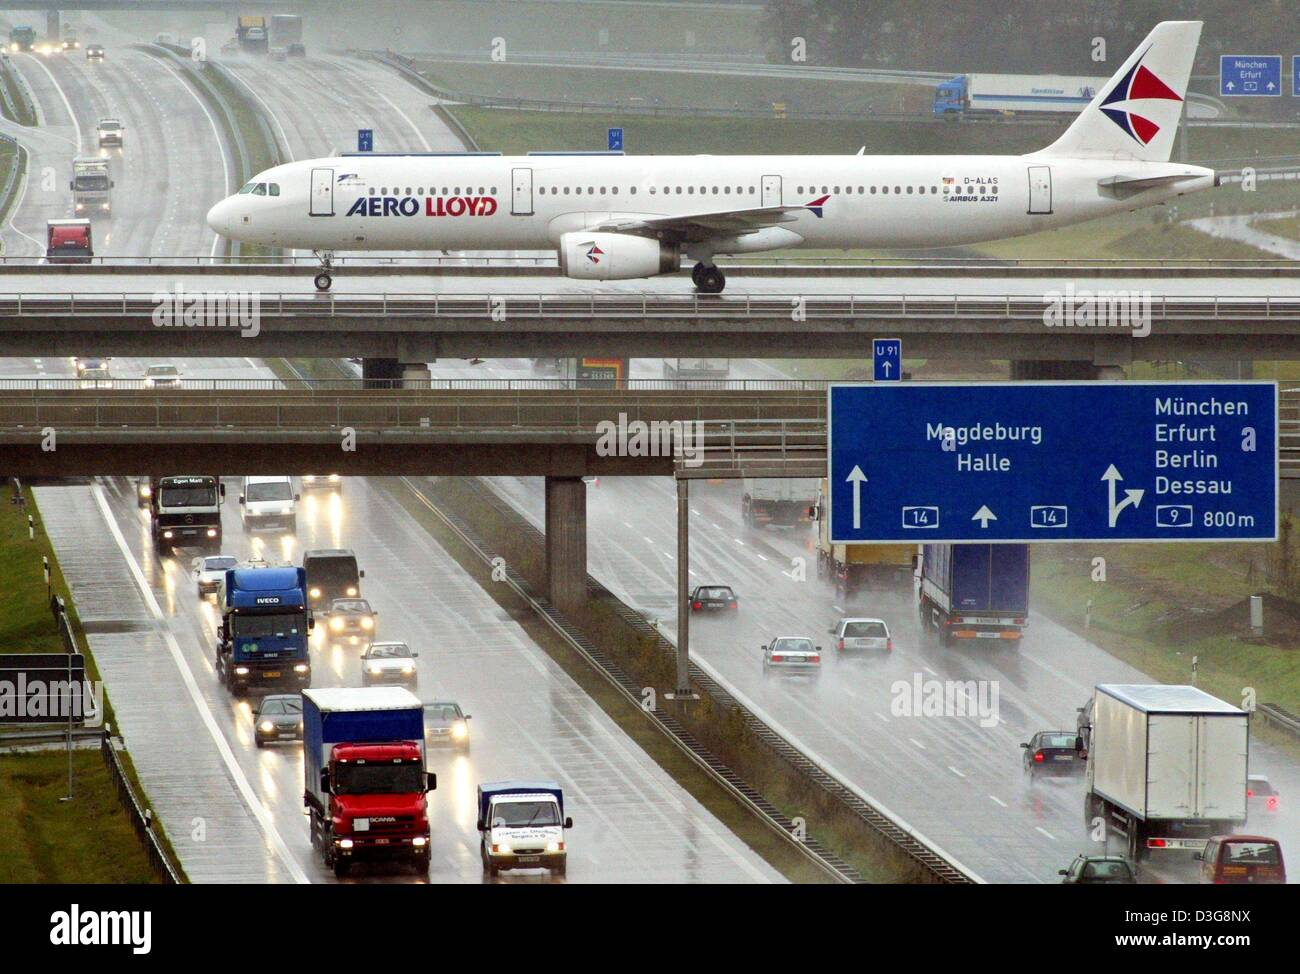 (dpa) - An Airbus A 321 of the German charter carrier Aero Lloyd rolls along the runway bridge across the A14 motorway Stock Photo